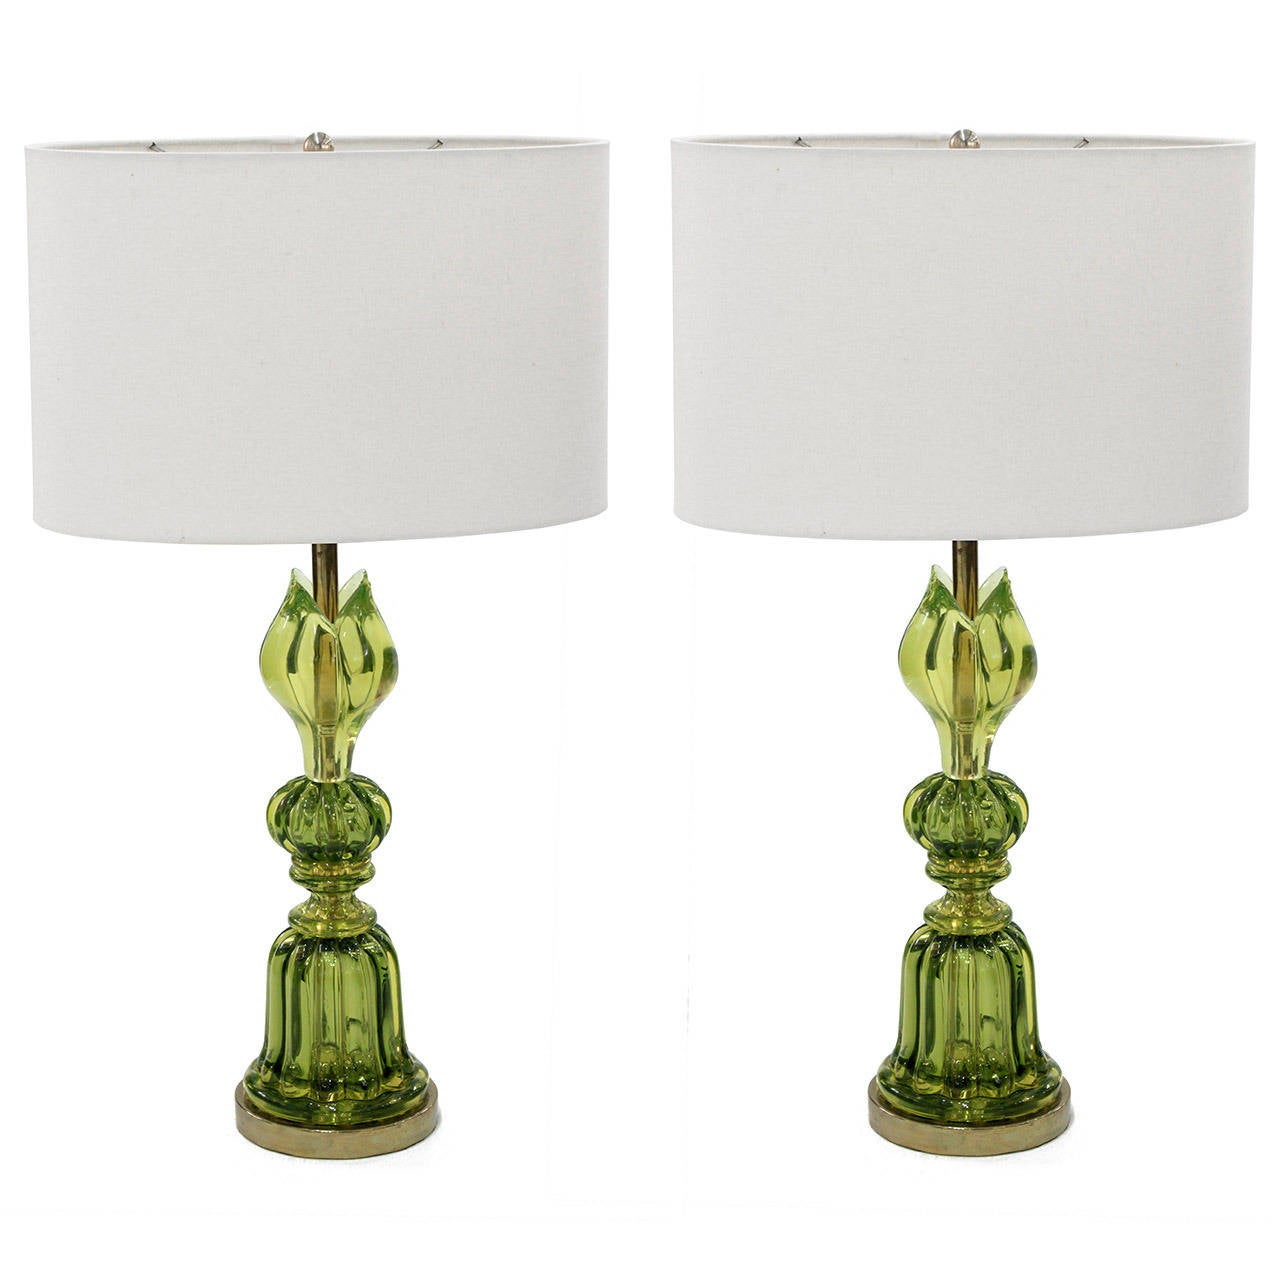 of exceptional handblown green glass table lamps by seguso at 1stdibs. Black Bedroom Furniture Sets. Home Design Ideas